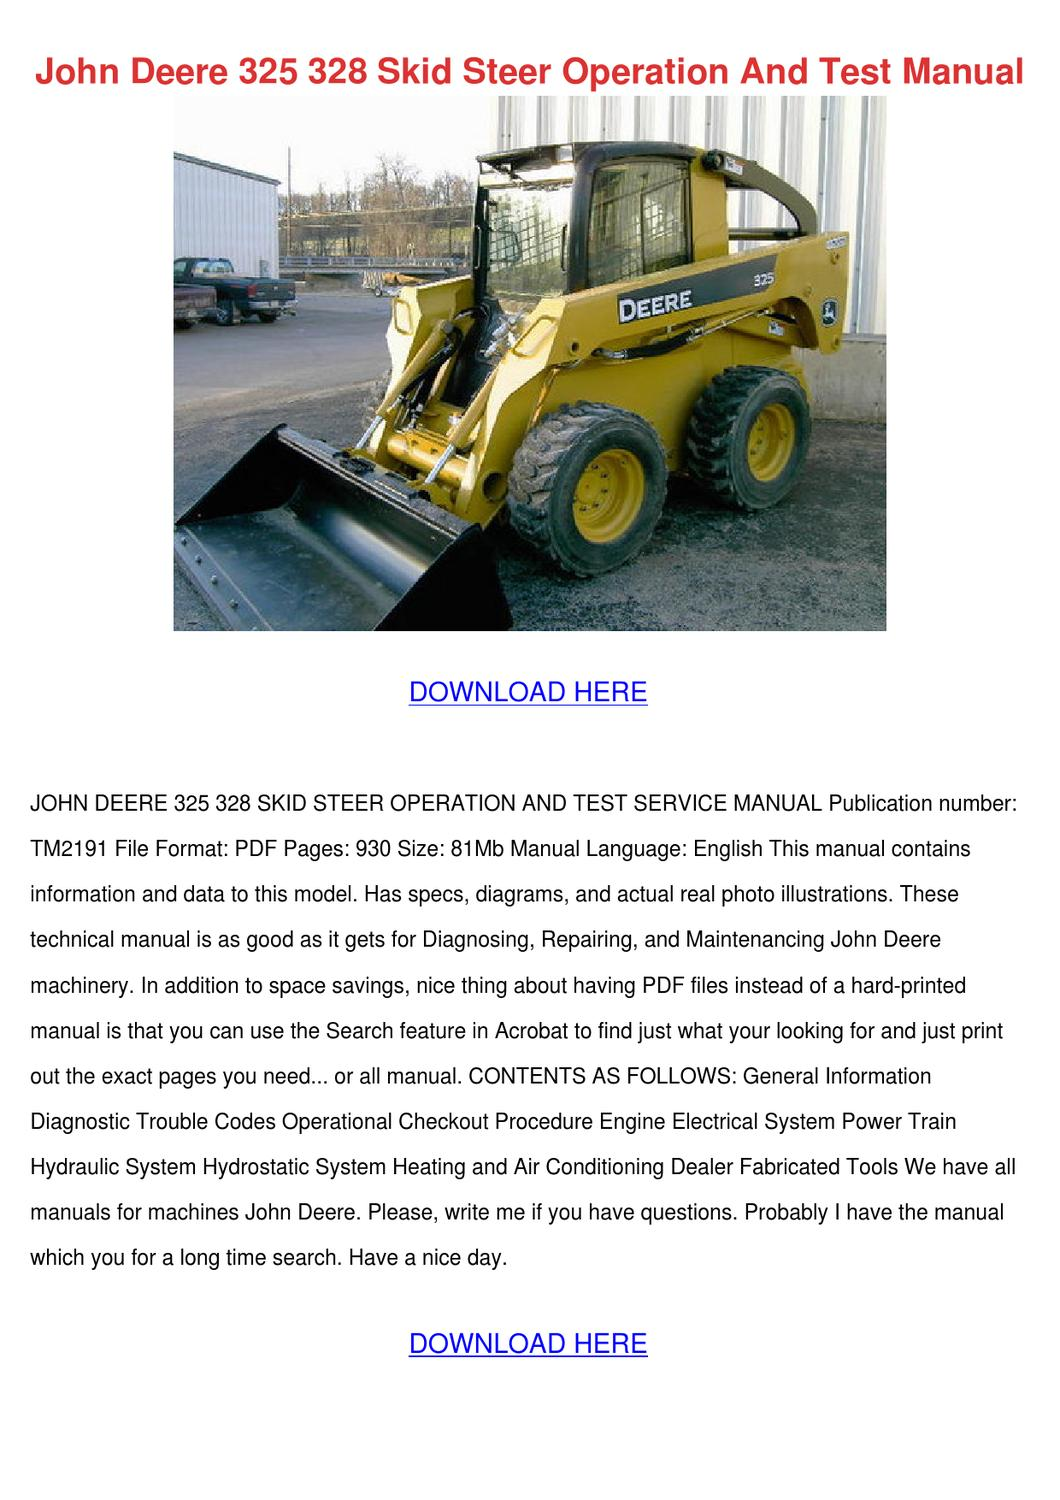 John Deere 325 328 Skid Steer Operation And T by Jung